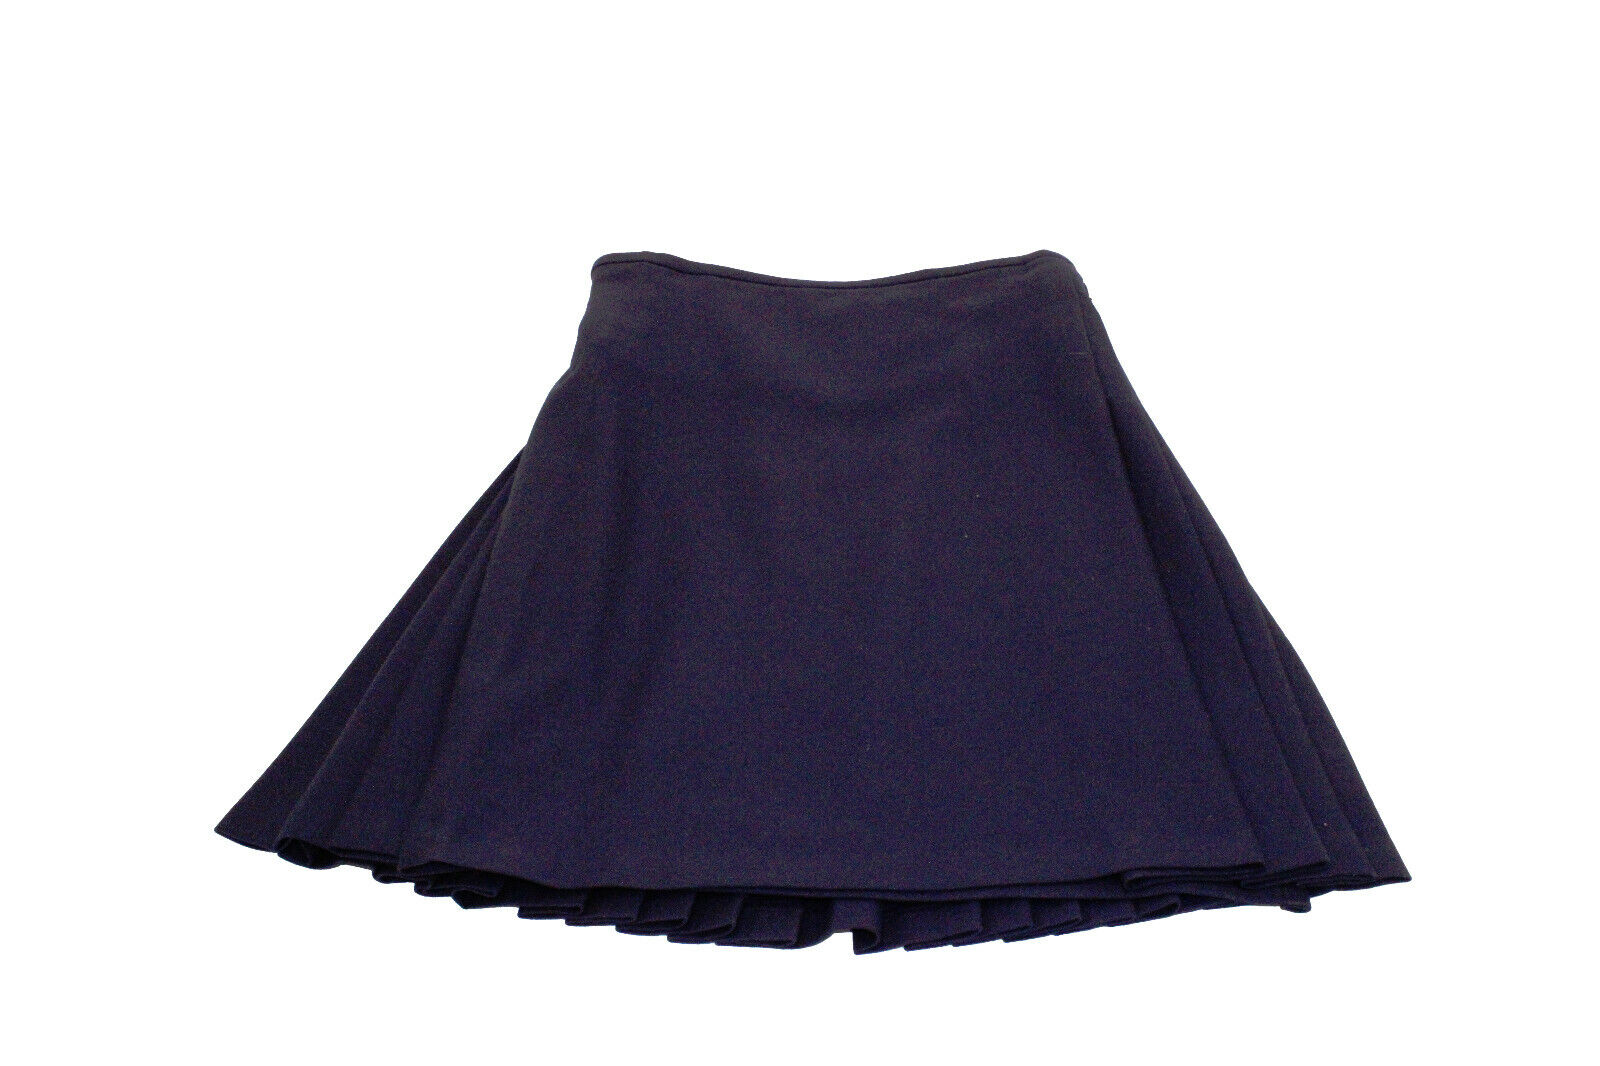 NEW 6 Yard Navy Wool Kilt - limited sizes - reduced to clear